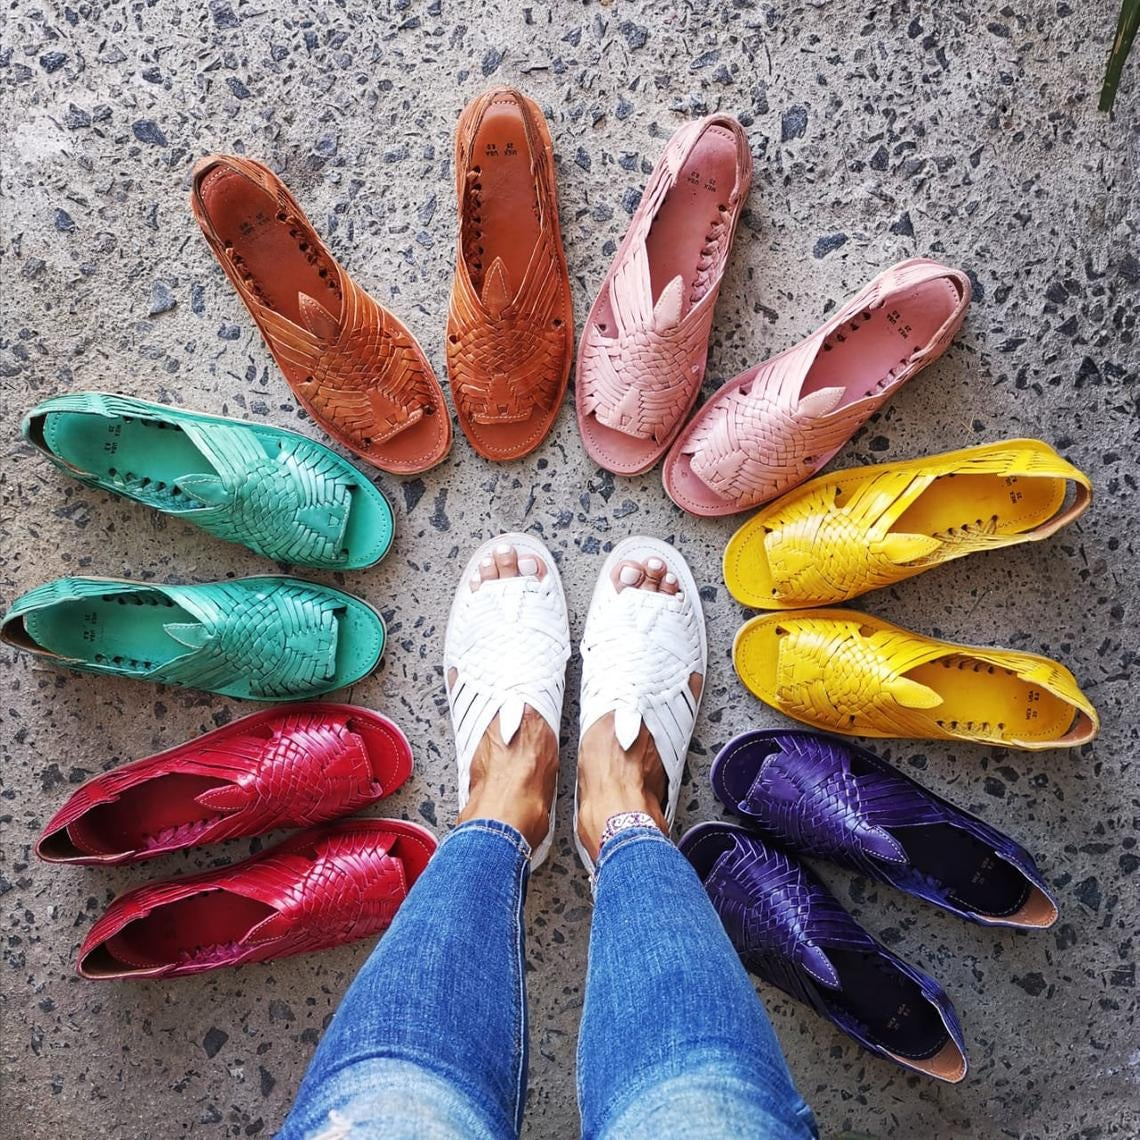 sandals in many colors